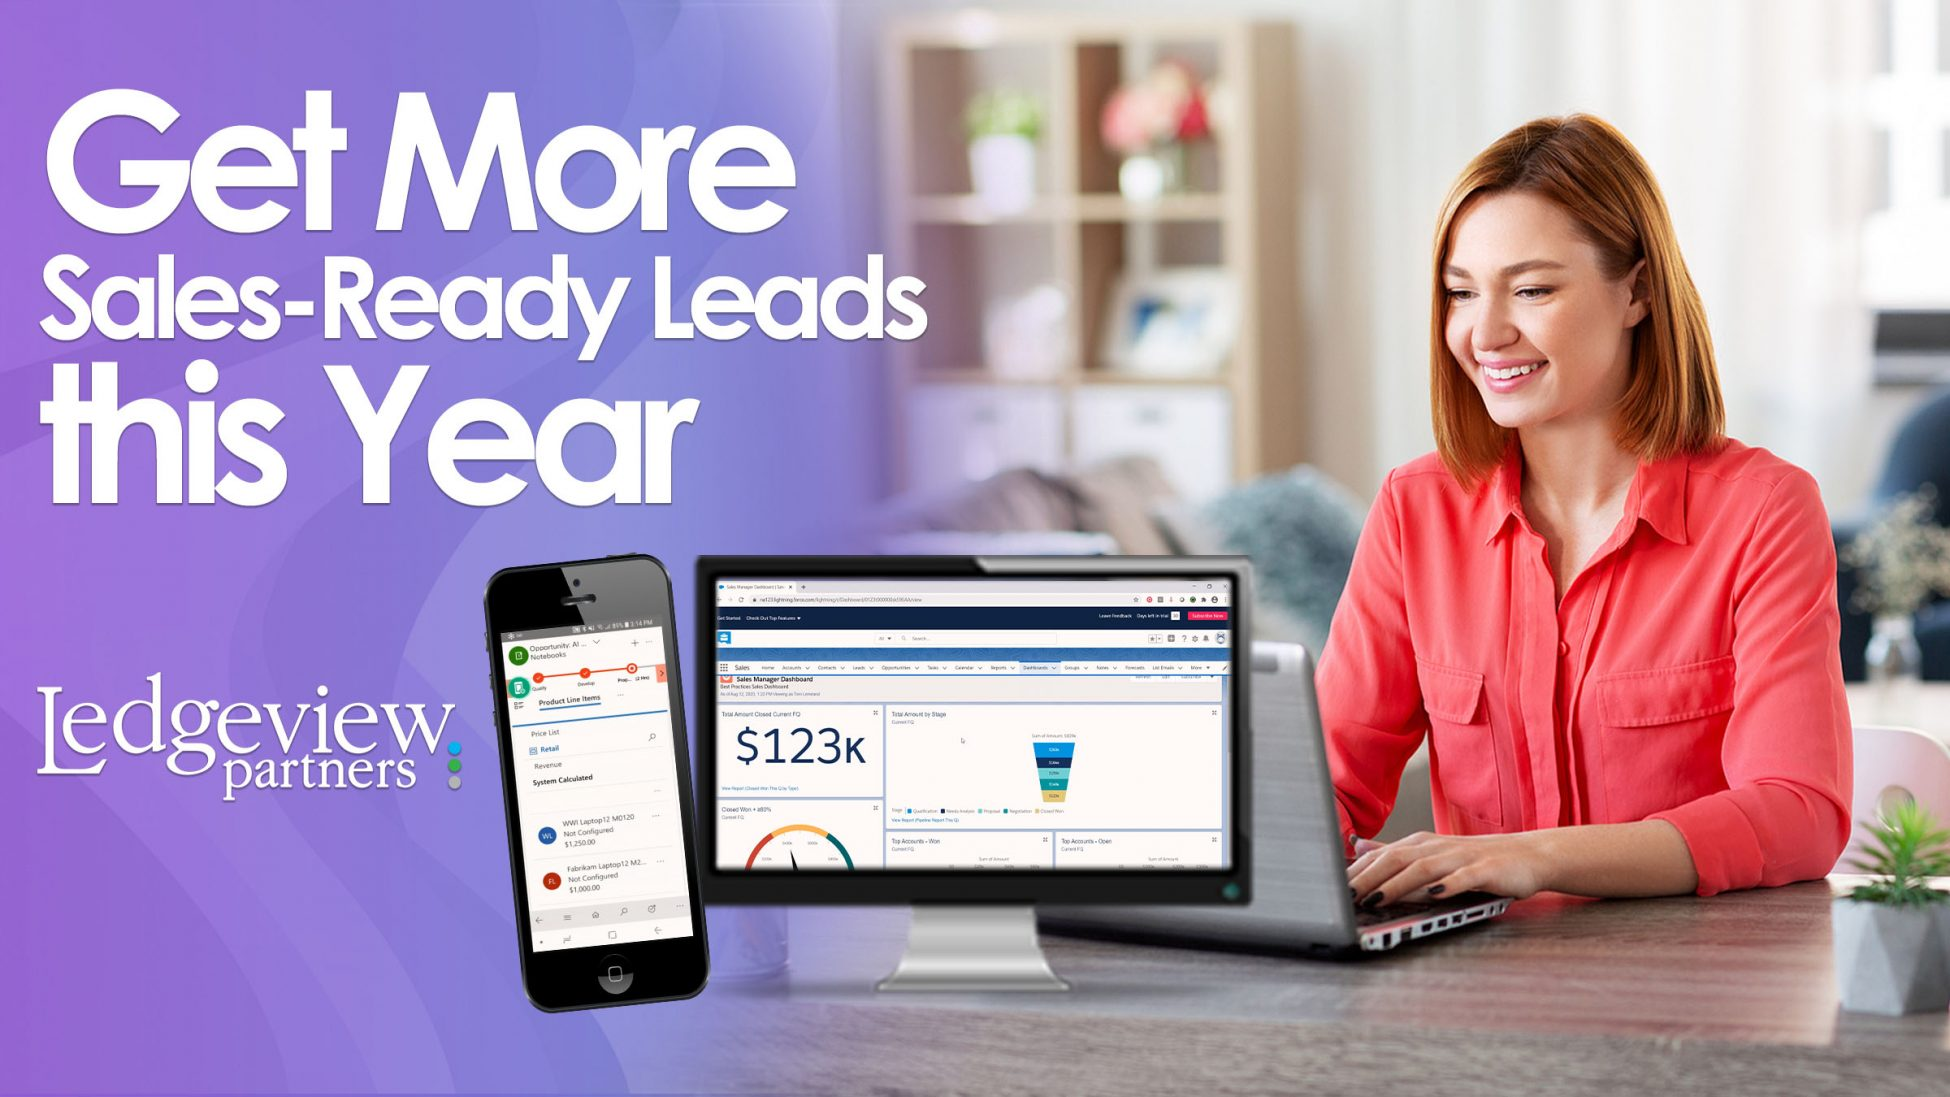 Get More Sales-Ready Leads this Year